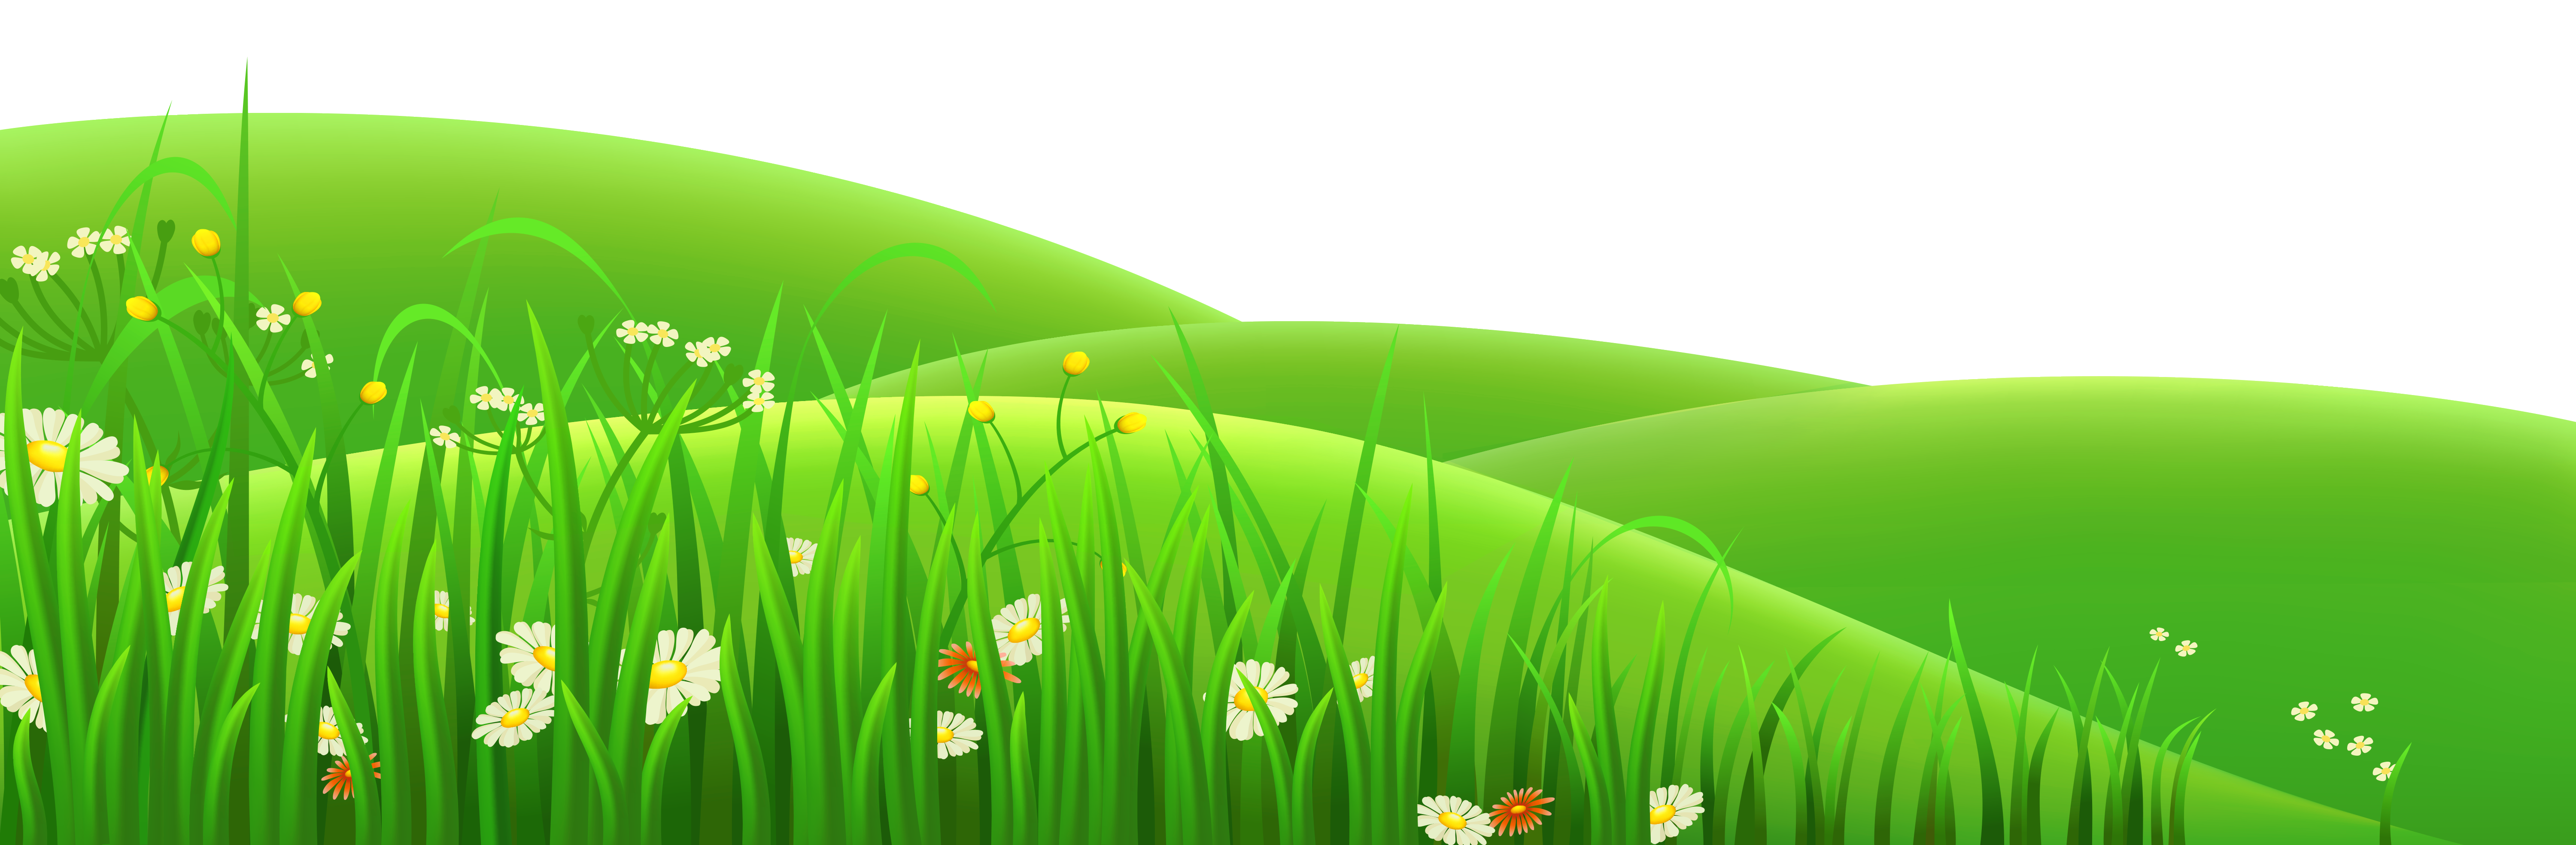 Flower meadow clipart banner library Flowers in grass clipart - ClipartFest banner library